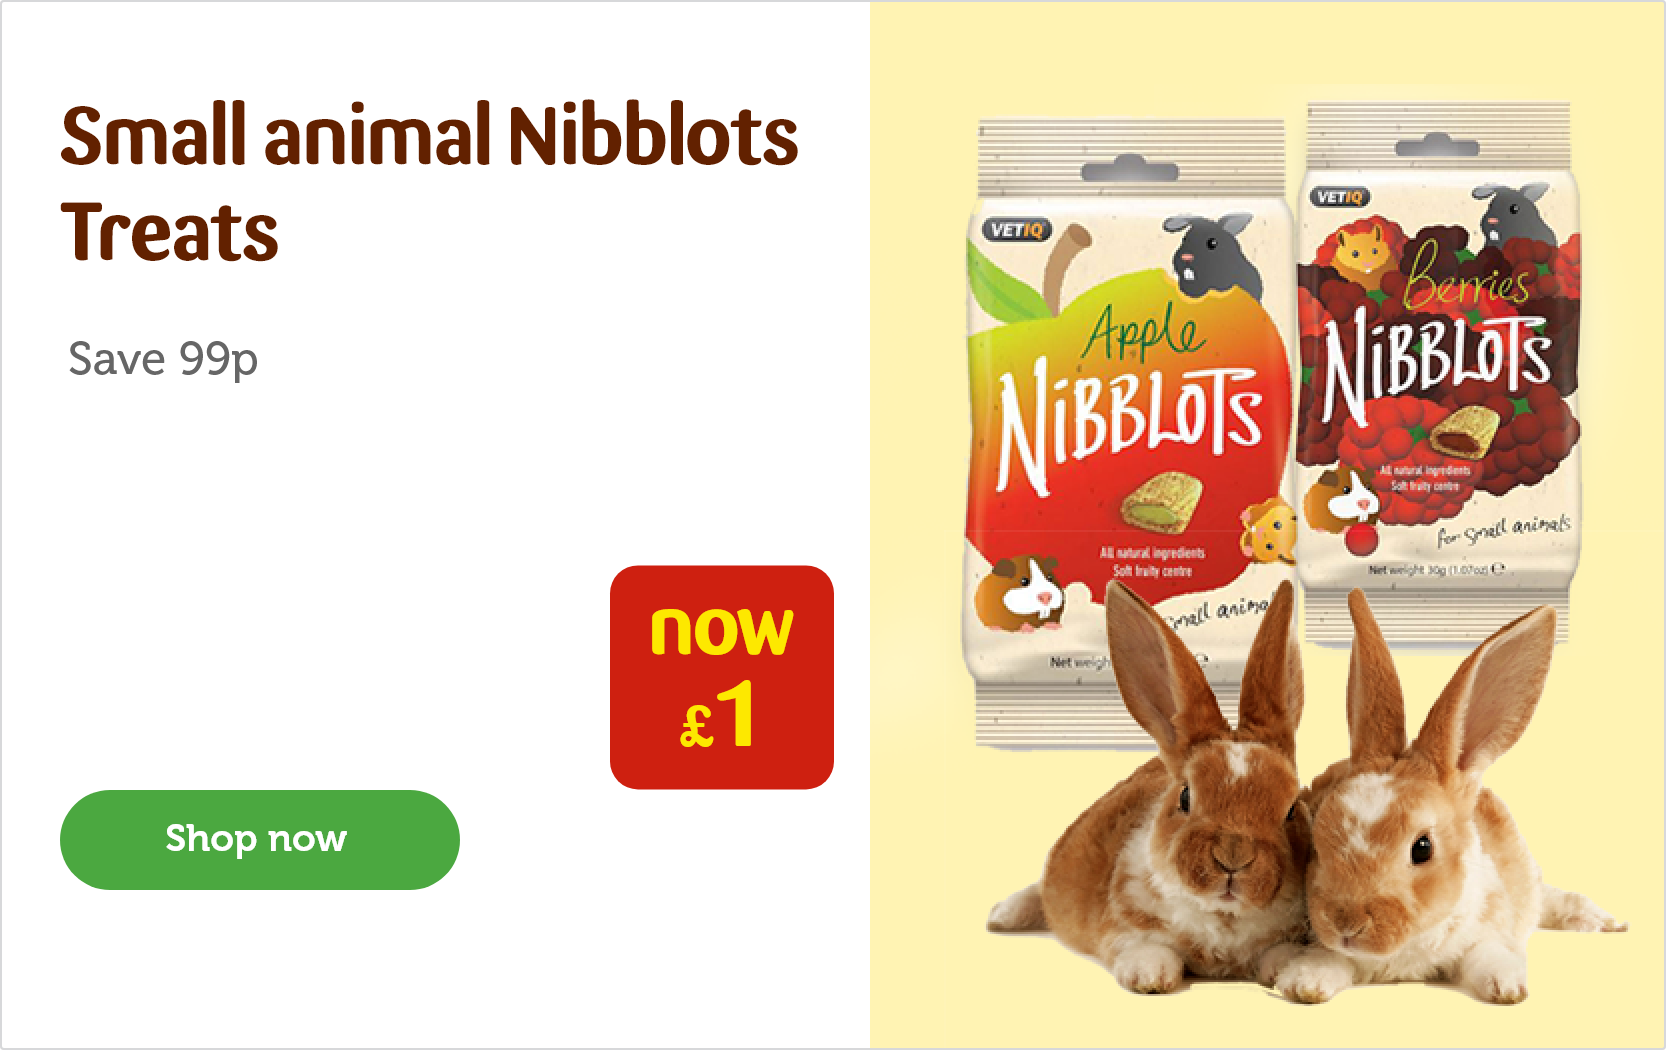 43cbed8ab0 Nibblots treats for £1